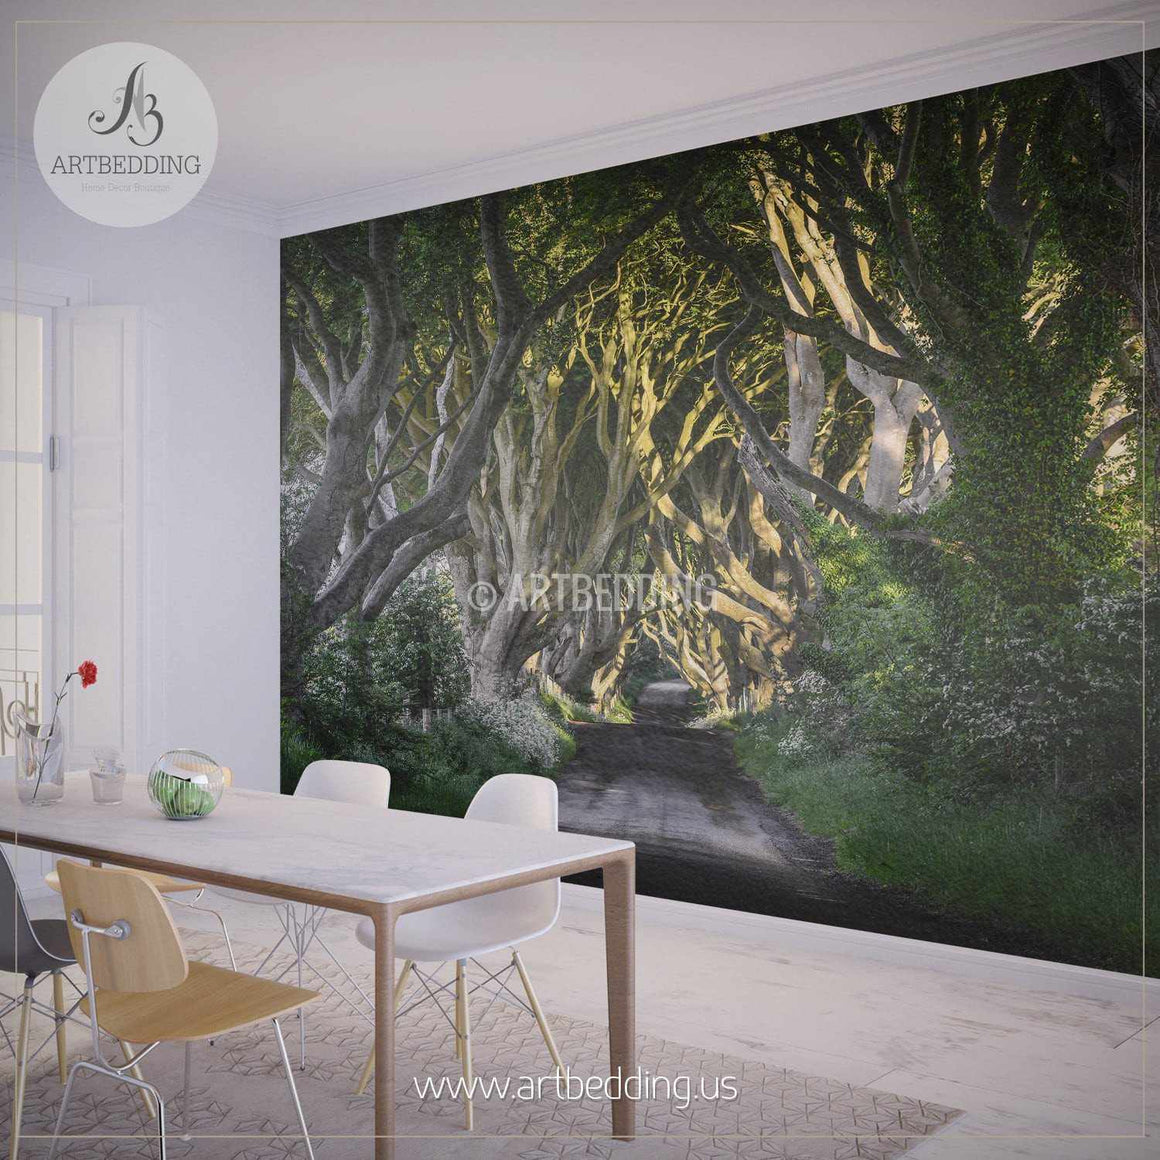 Route through Forest Wall Mural, Self Adhesive Peel & Stick Photo Mural, Nature photo mural home decor wall mural